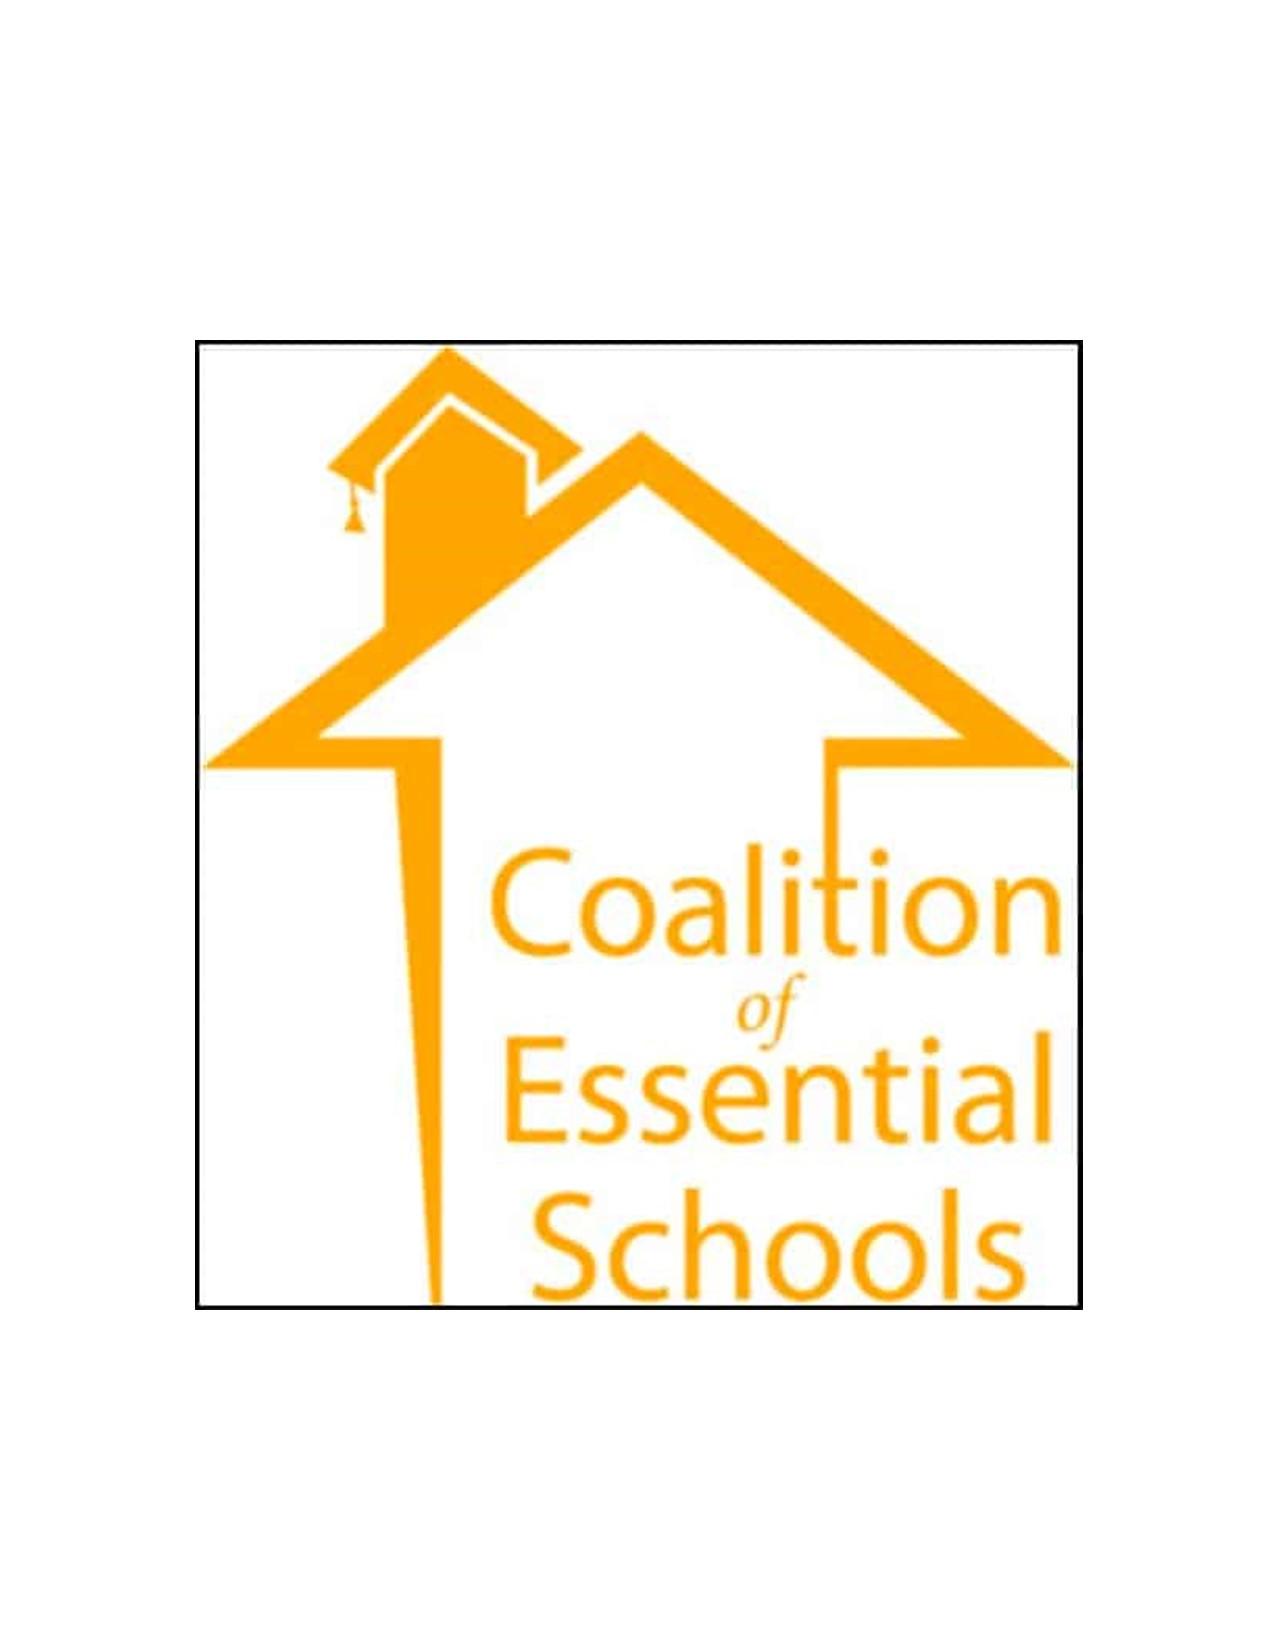 23 The Coalition of Essential Schools